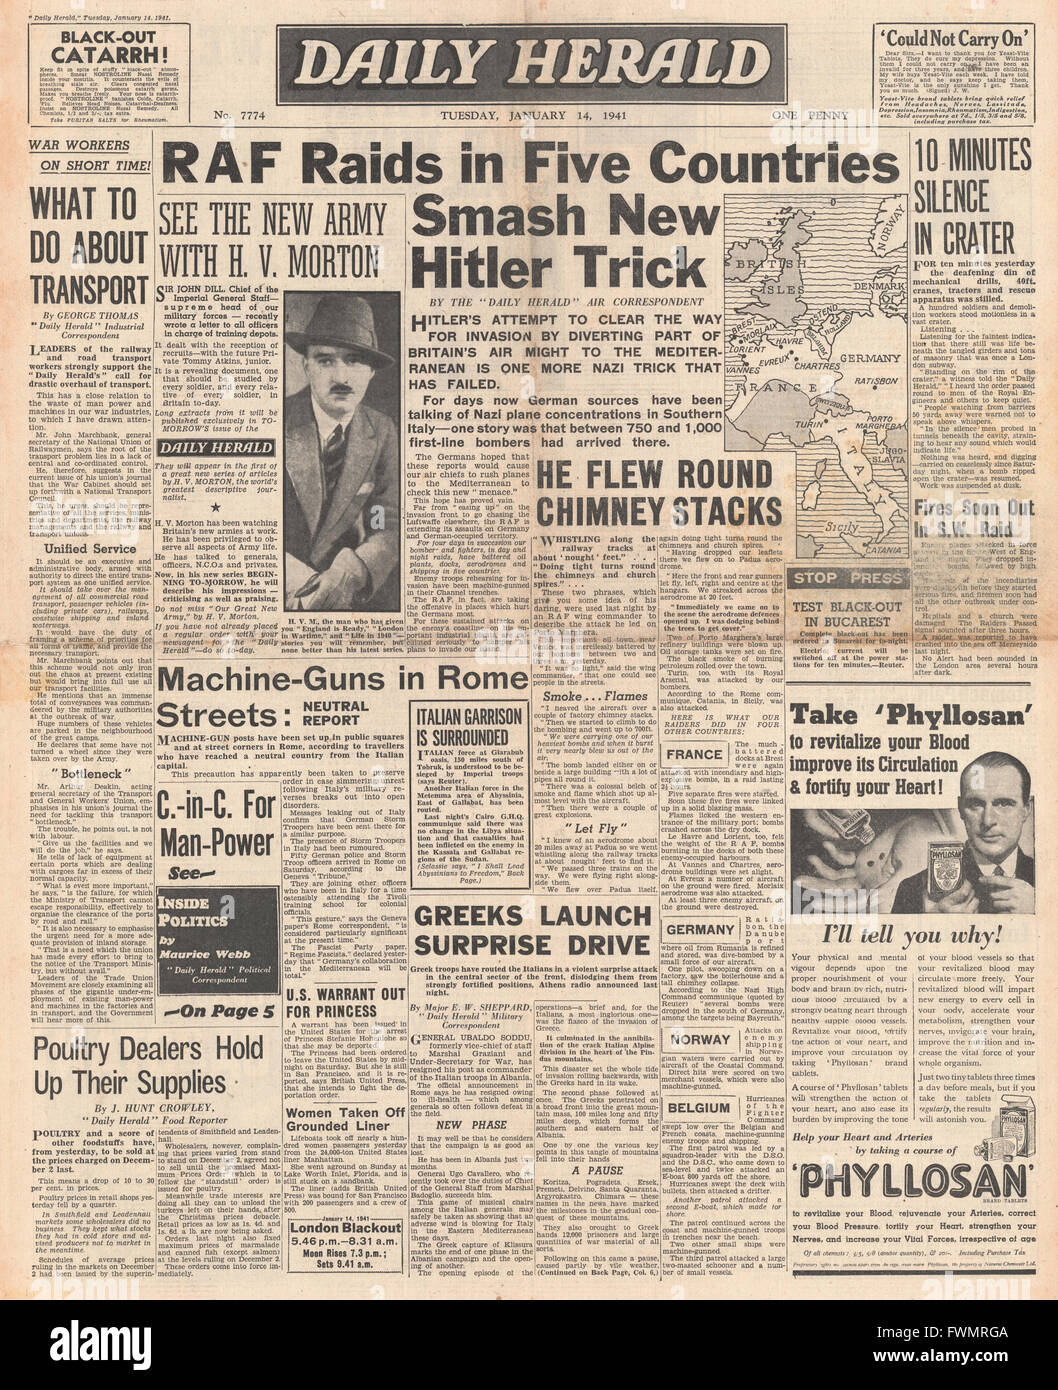 1941 front page  Daily Herald RAF making day and night raids - Stock Image